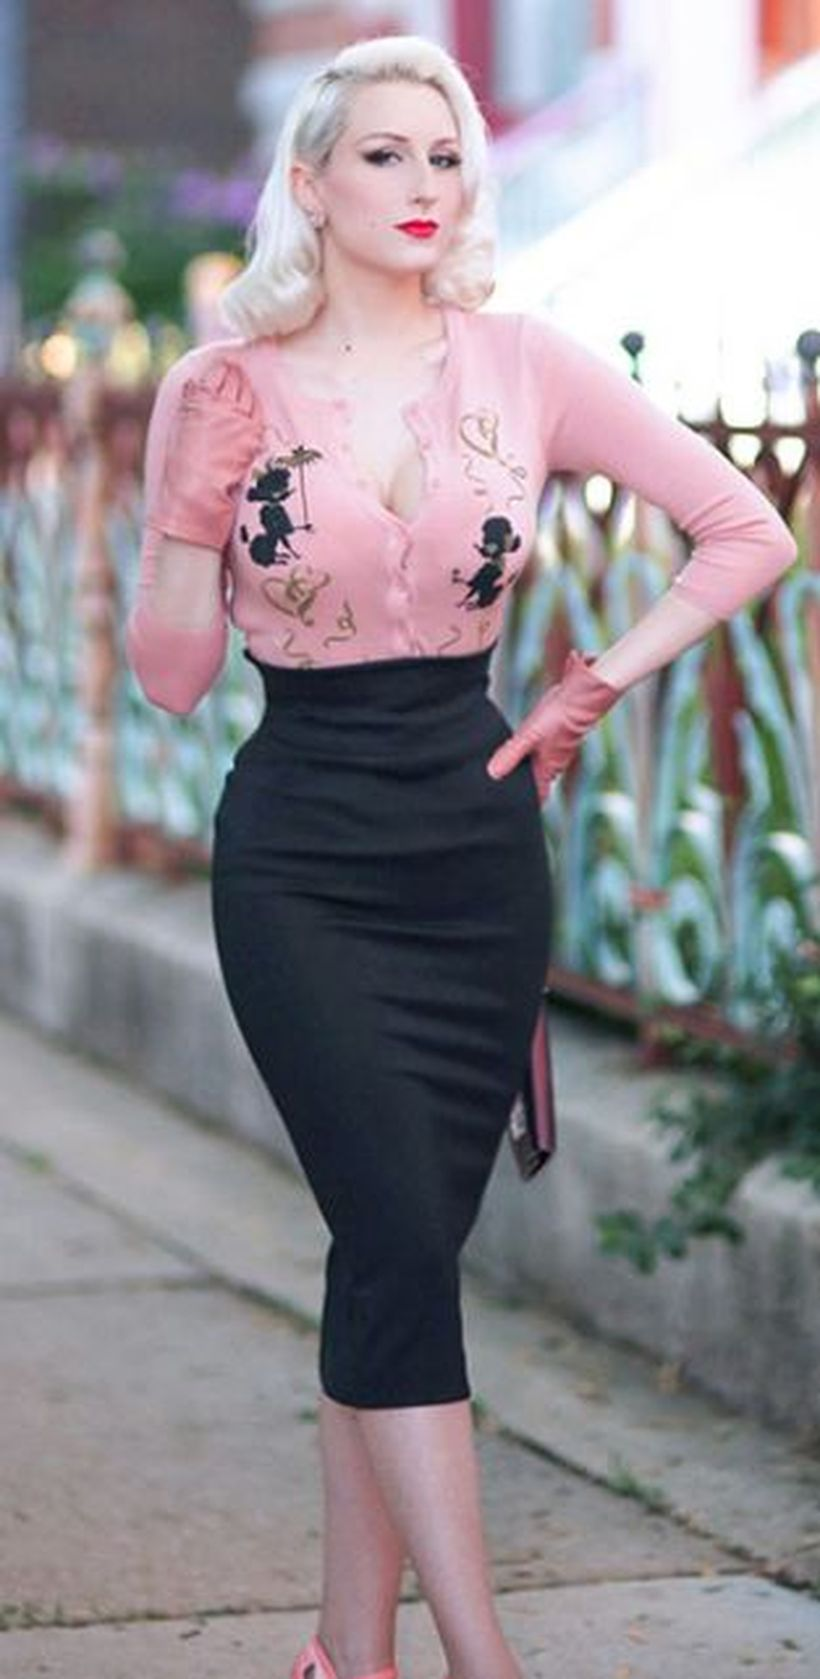 Vintage Rockabilly Fashion Style Outfits 4 Fashion Best